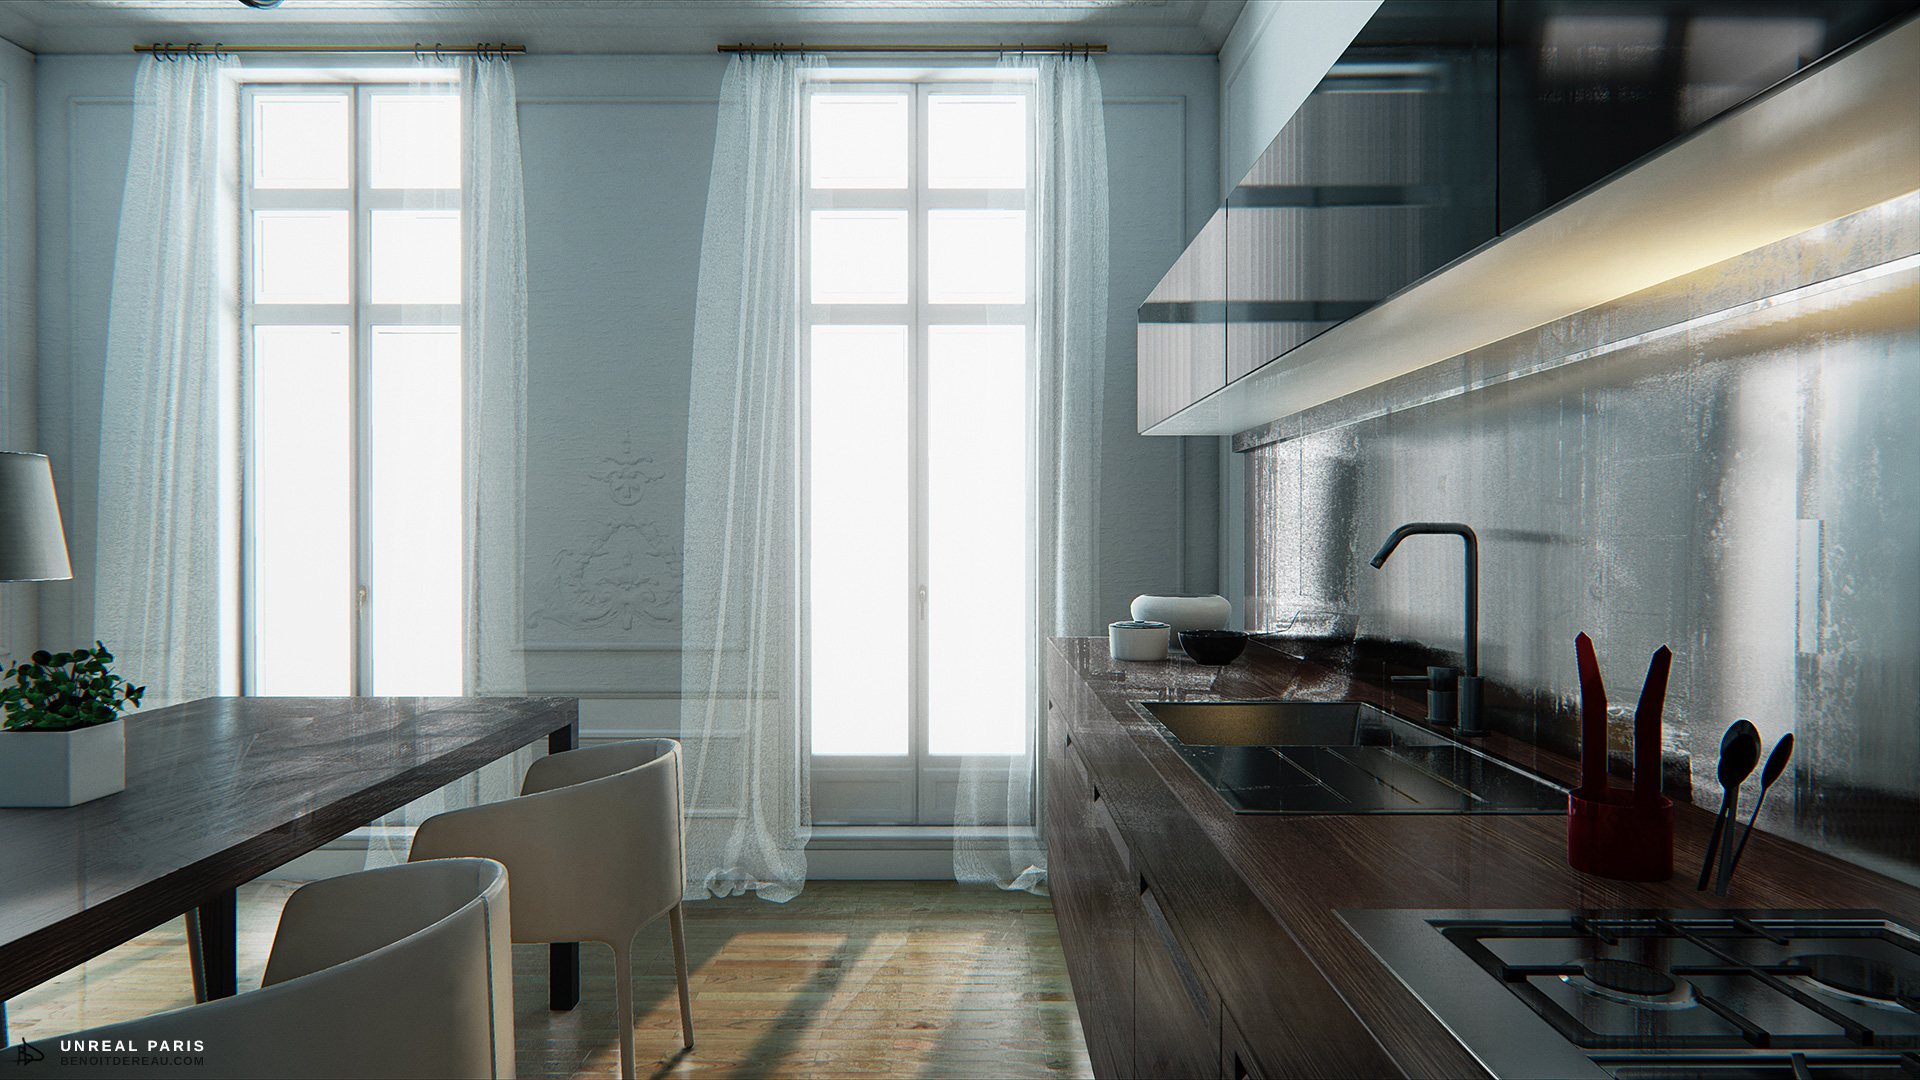 Unreal Engine 4 Download The Mind Blowing Unreal Paris Map Experience The Best Visuals Ever